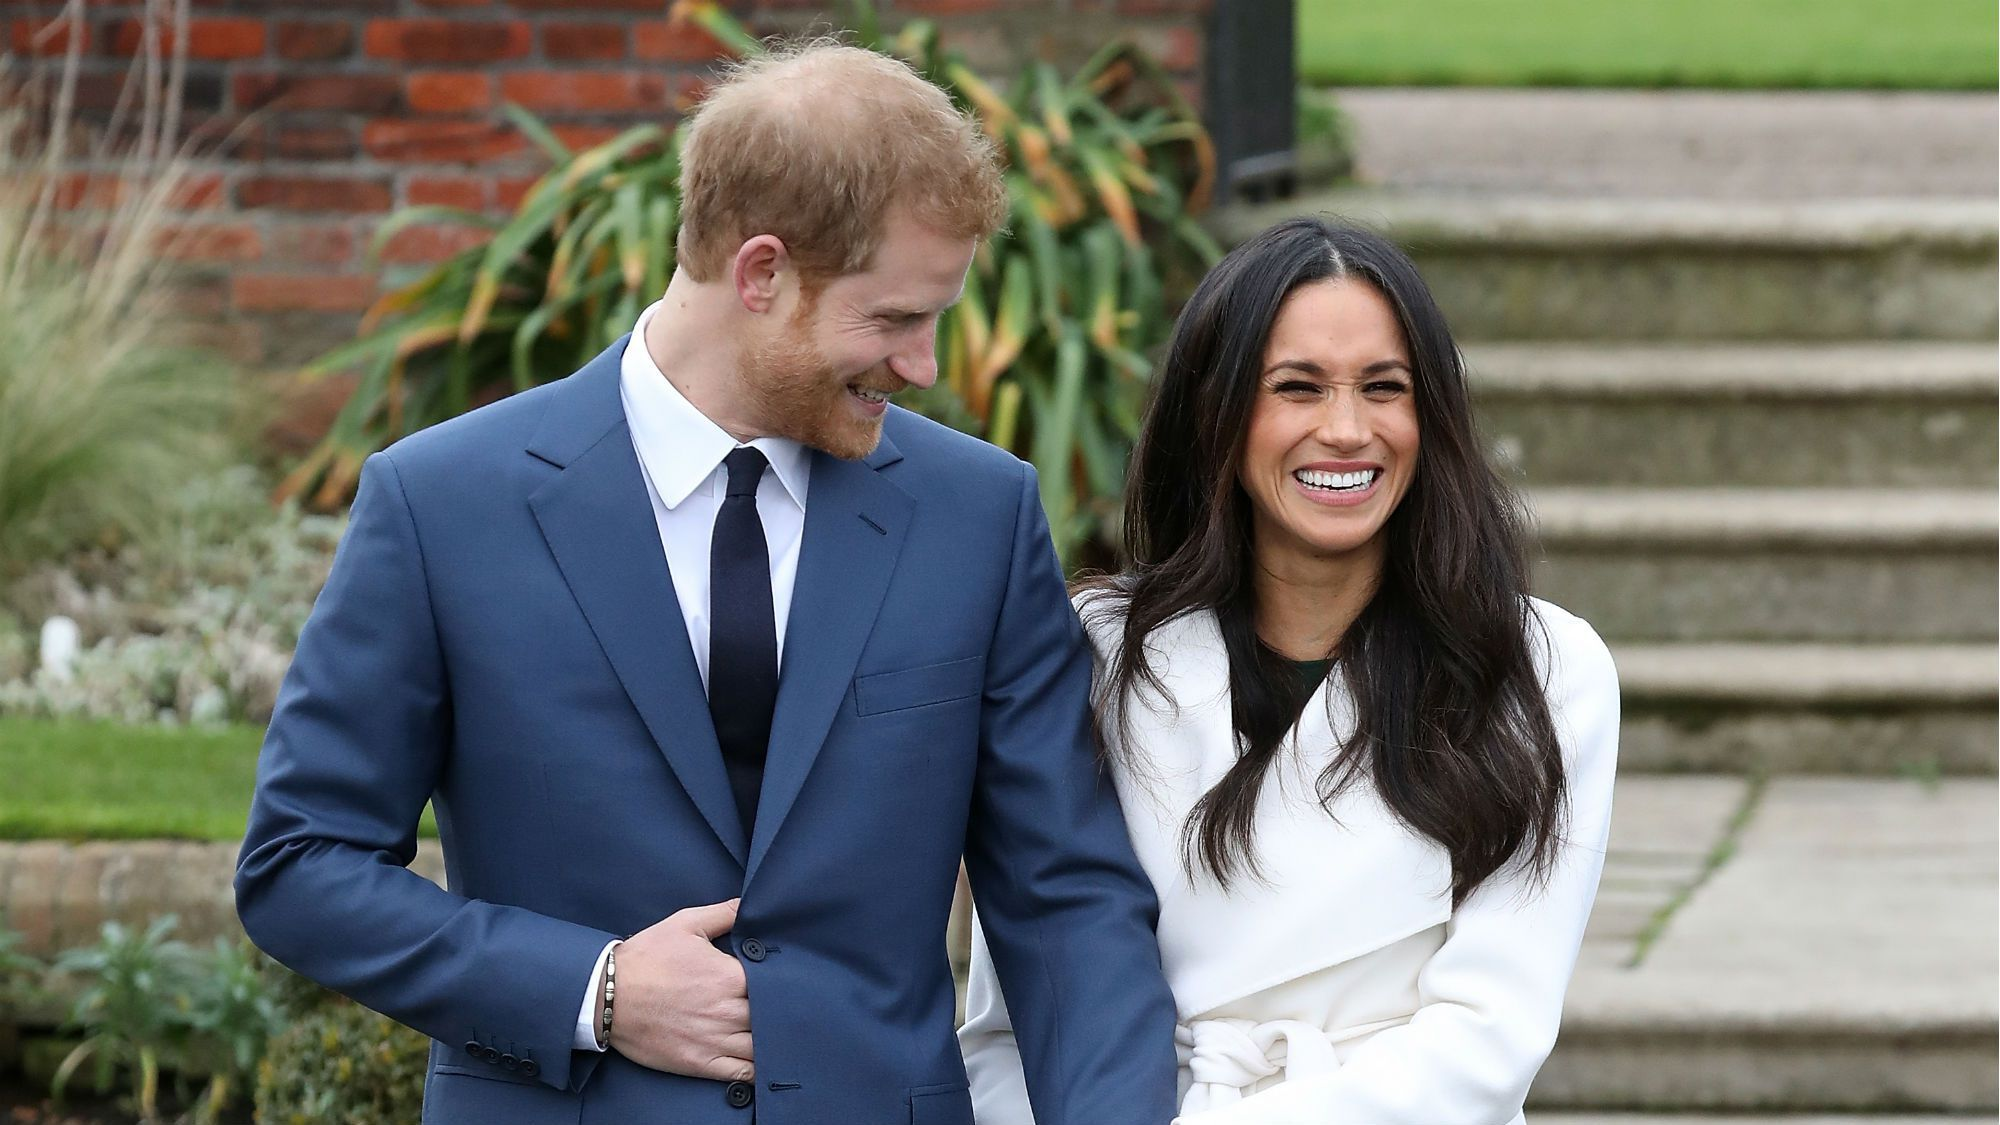 Move over ivanka the meghan markle is now the top cosmetic